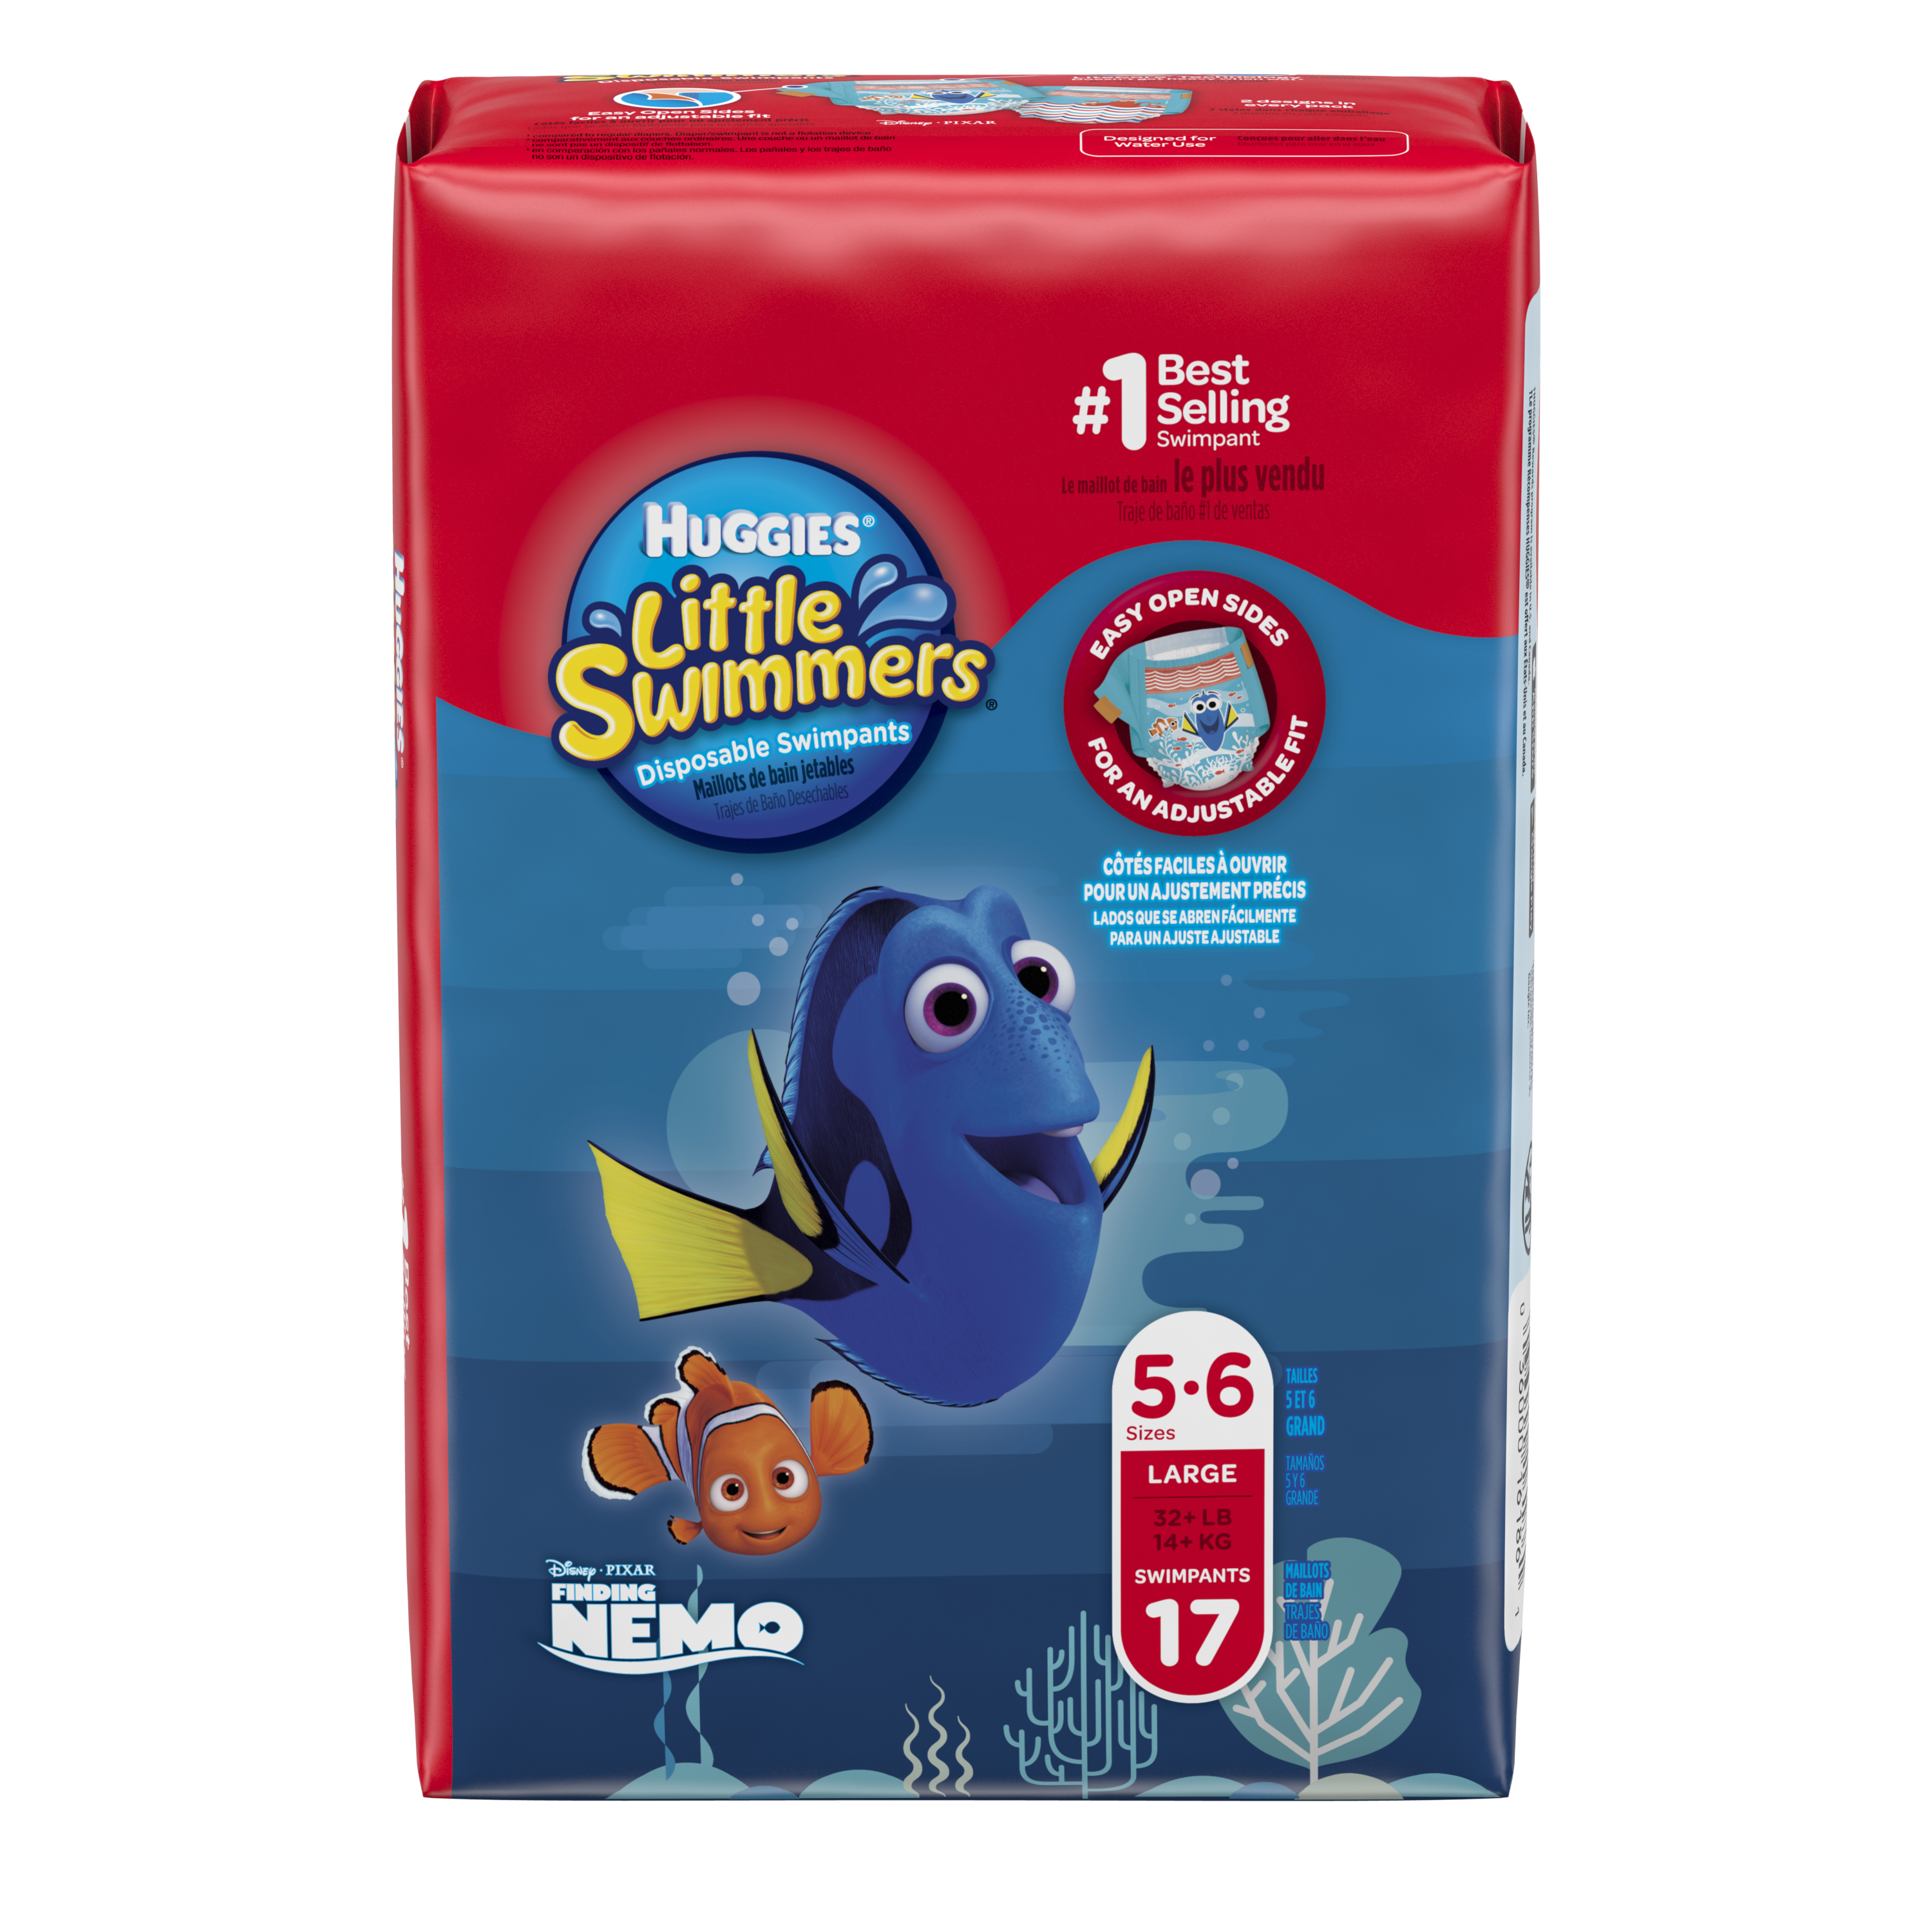 HUGGIES Little Swimmers Disposable Swim Diapers, Size Large (32+ lbs), 17 Count